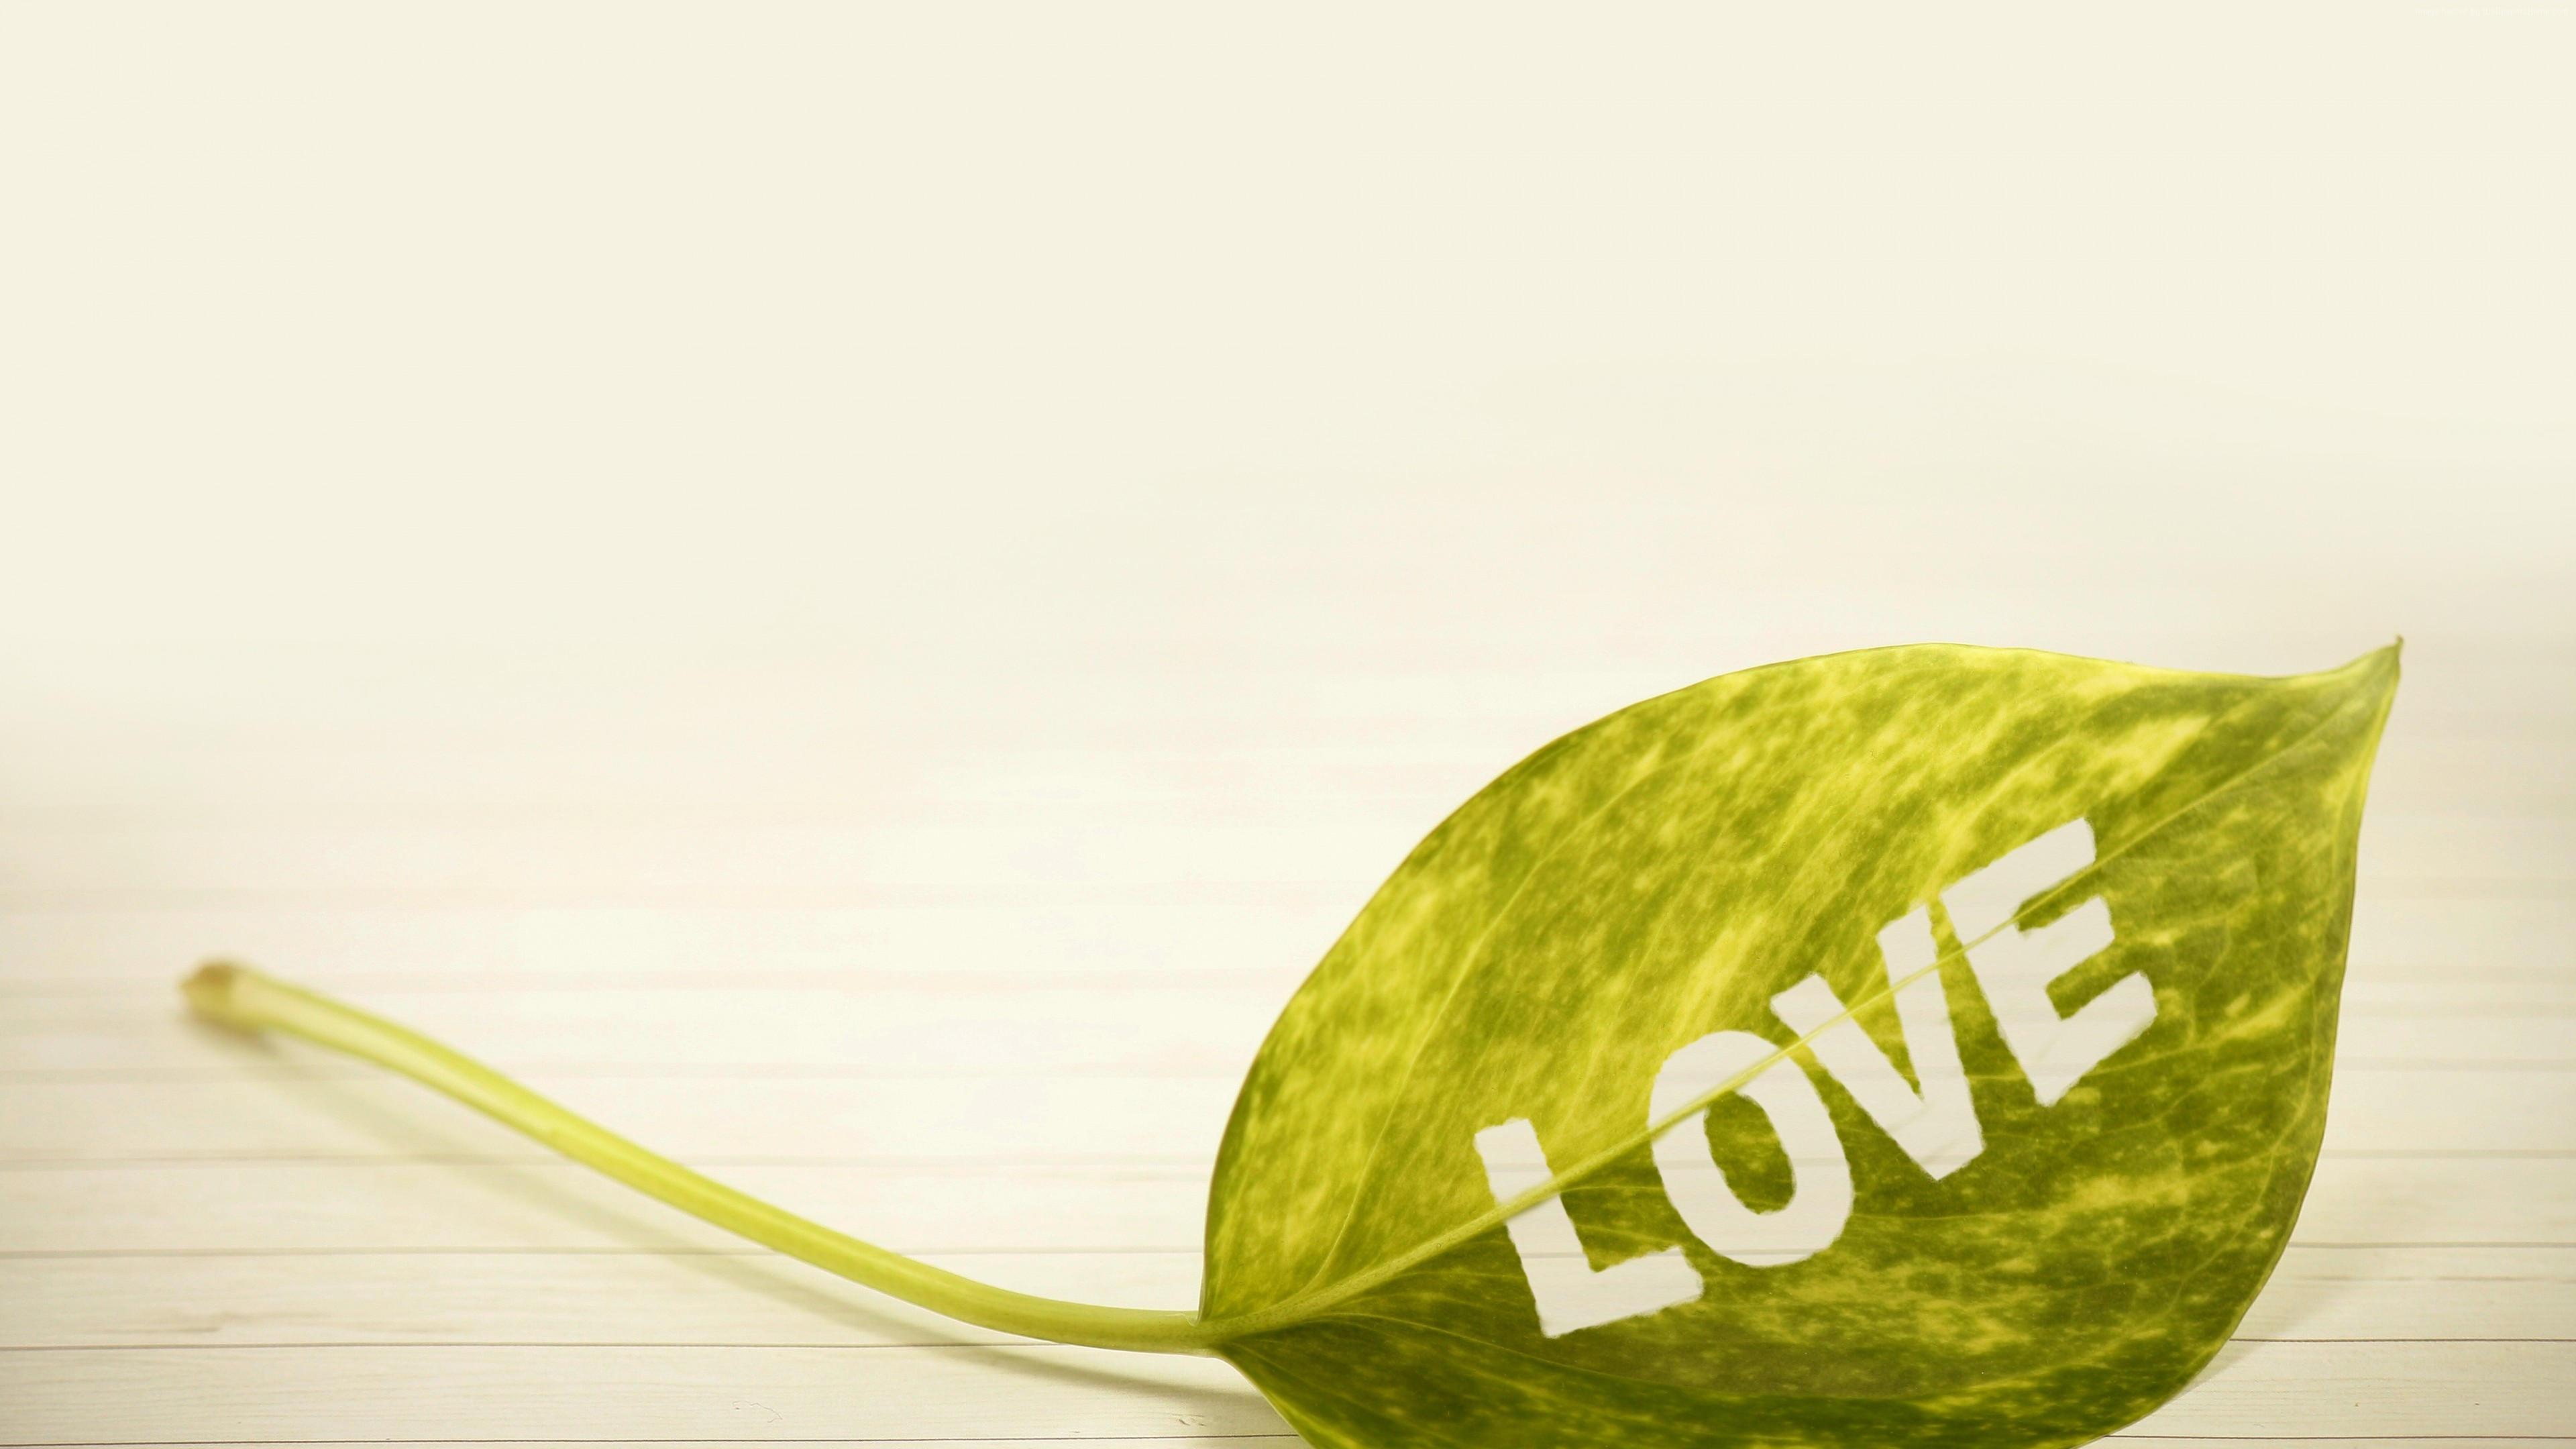 Stock Images love image, leaf, 4k, Stock Images